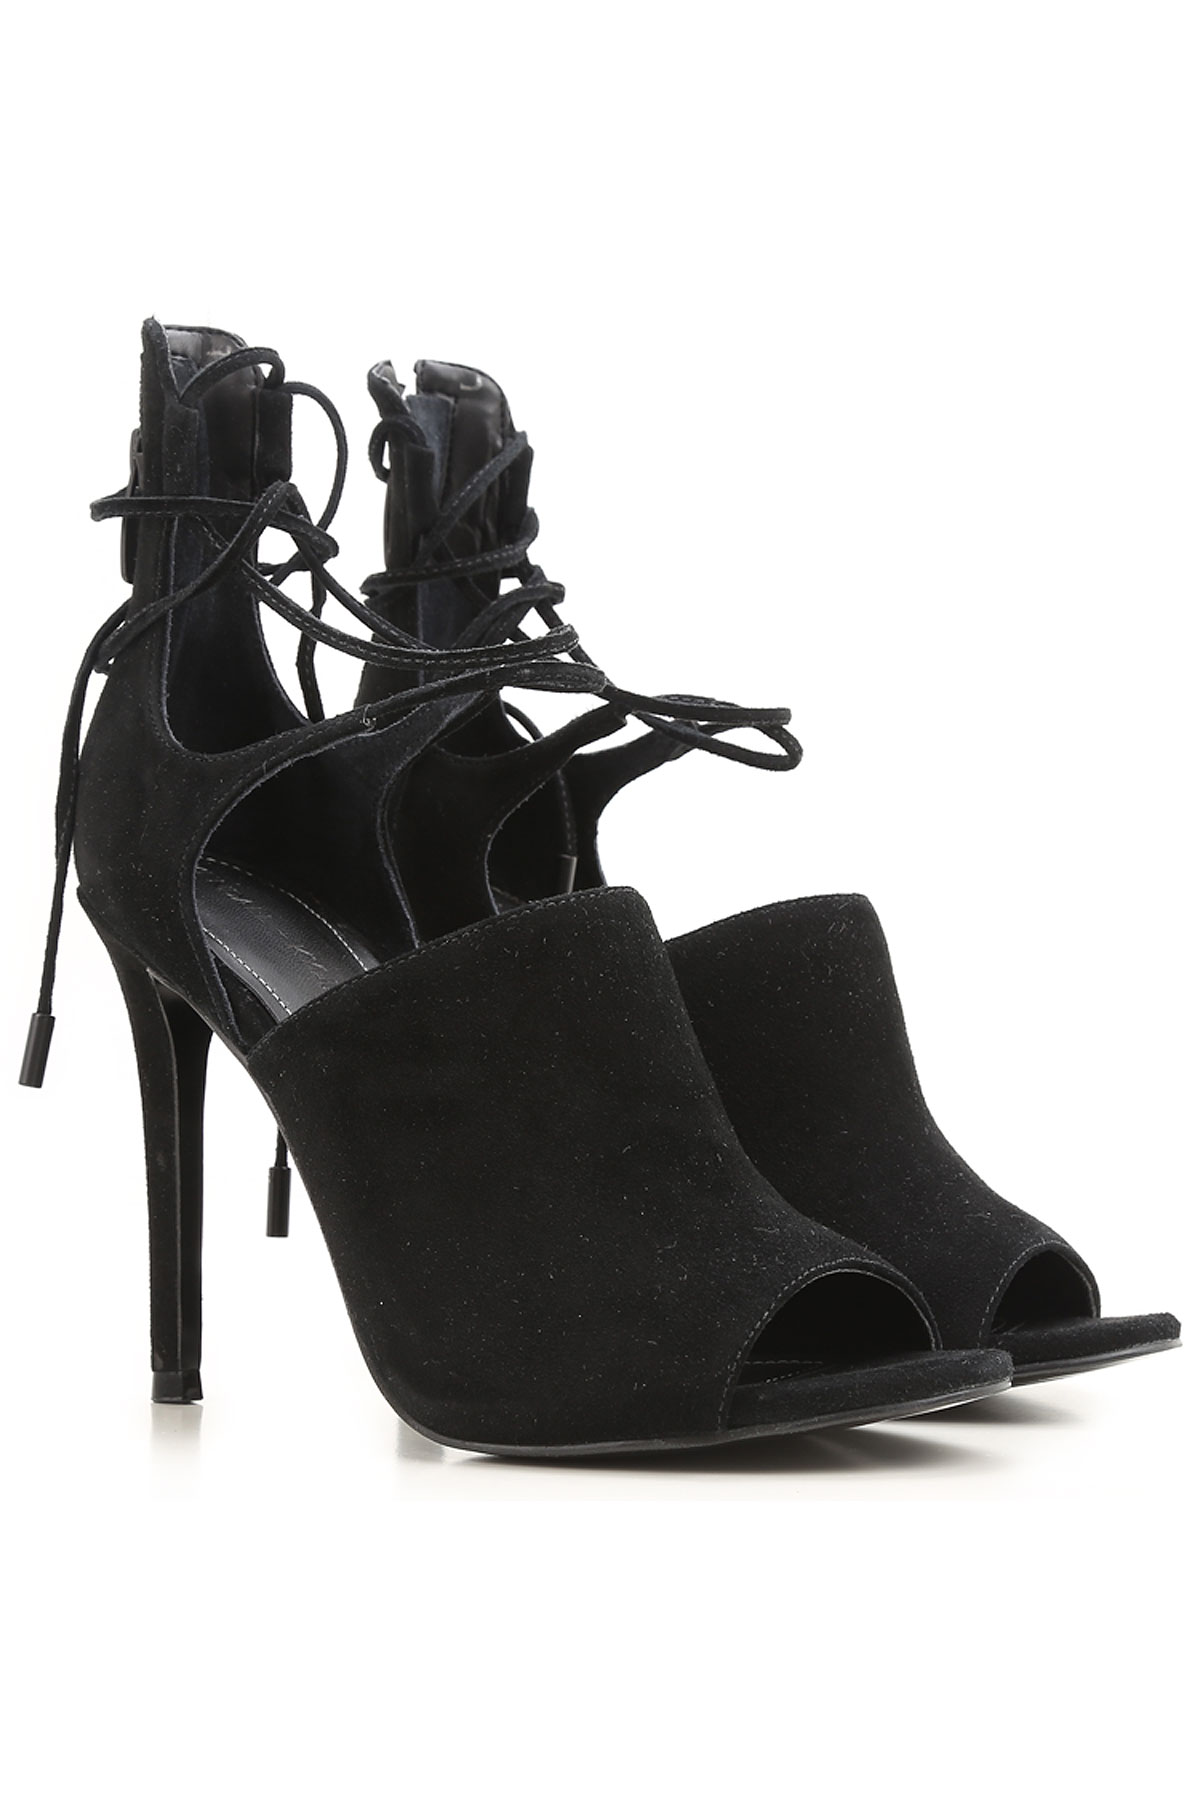 Kendall Kylie Sandals for Women On Sale in Outlet, Black, Suede leather, 2019, 5.5 8.5